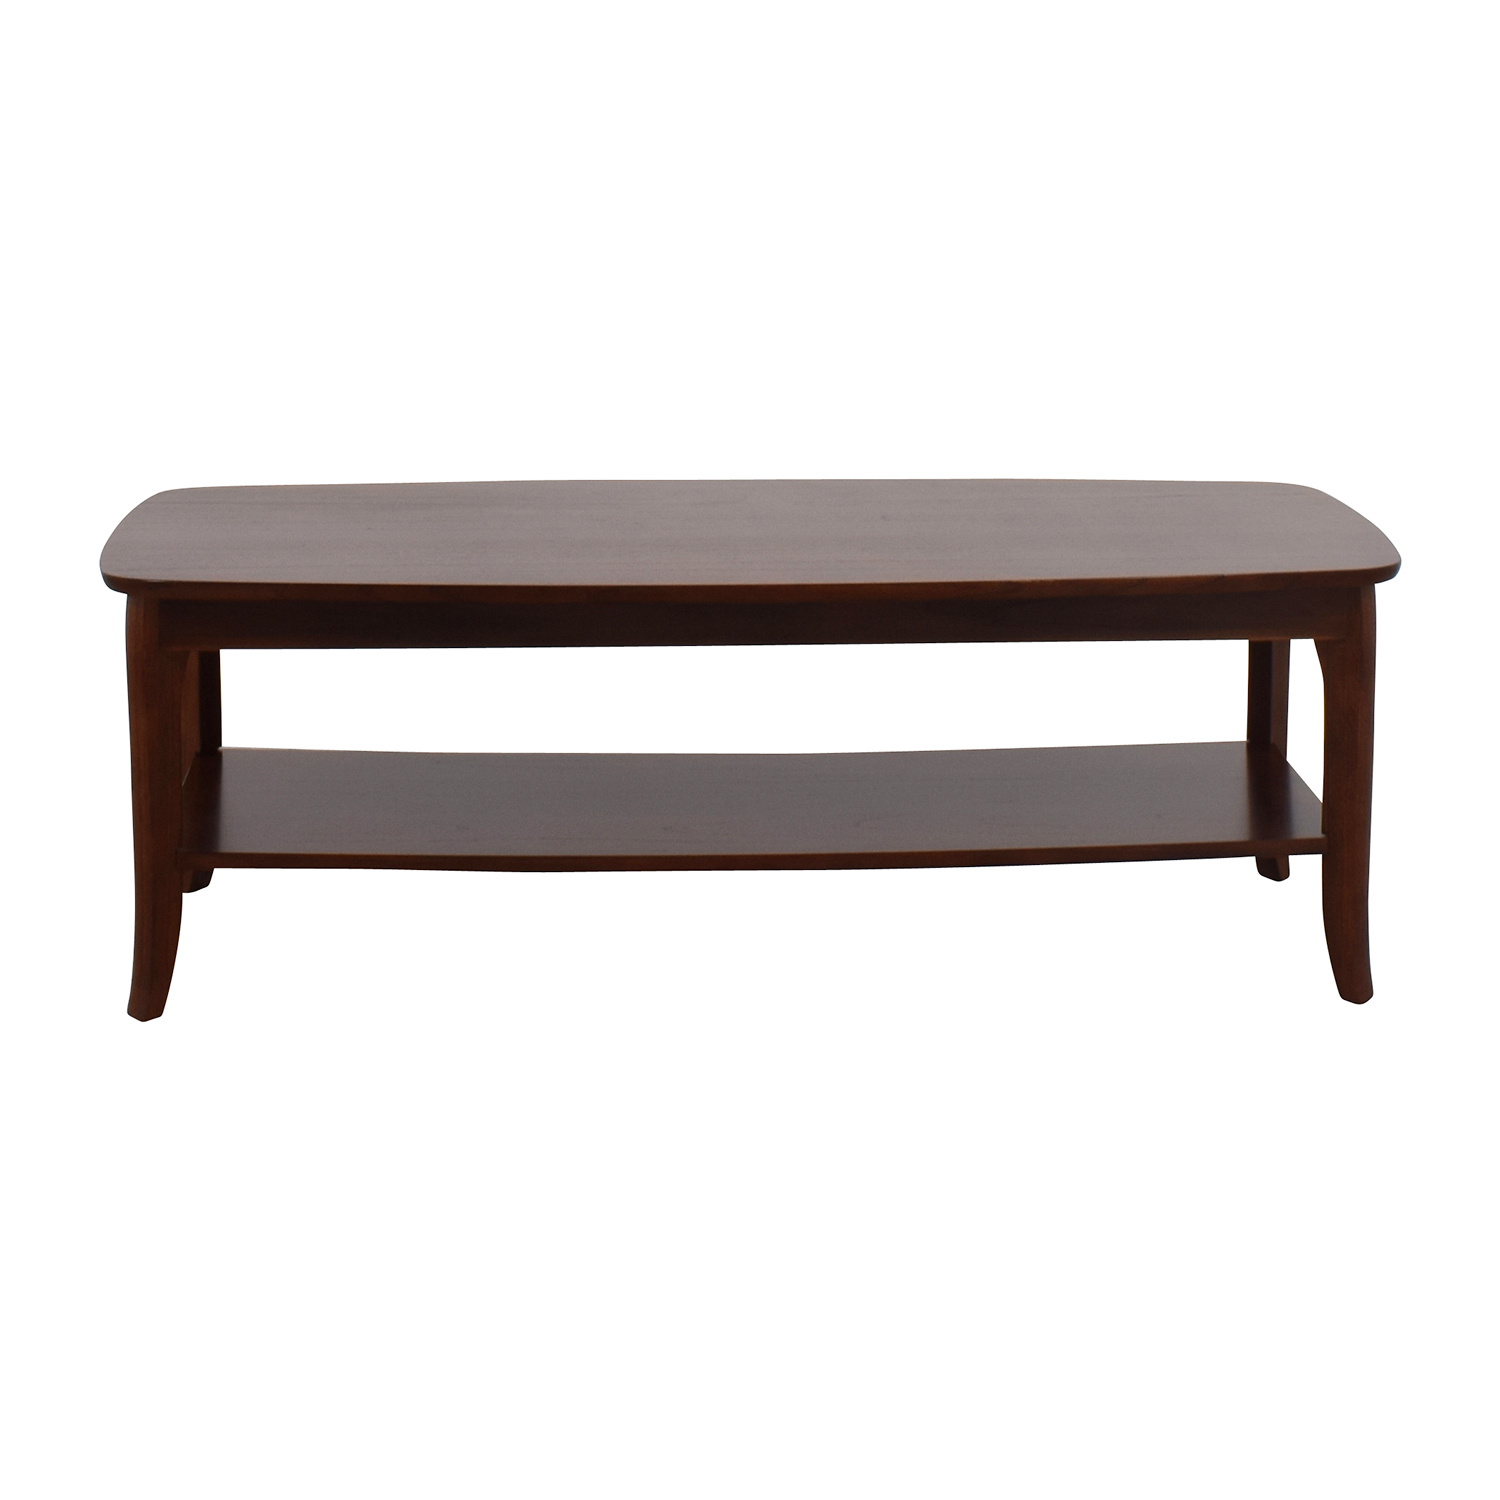 Pottery Barn Pottery Barn Rectangular Coffee Table price